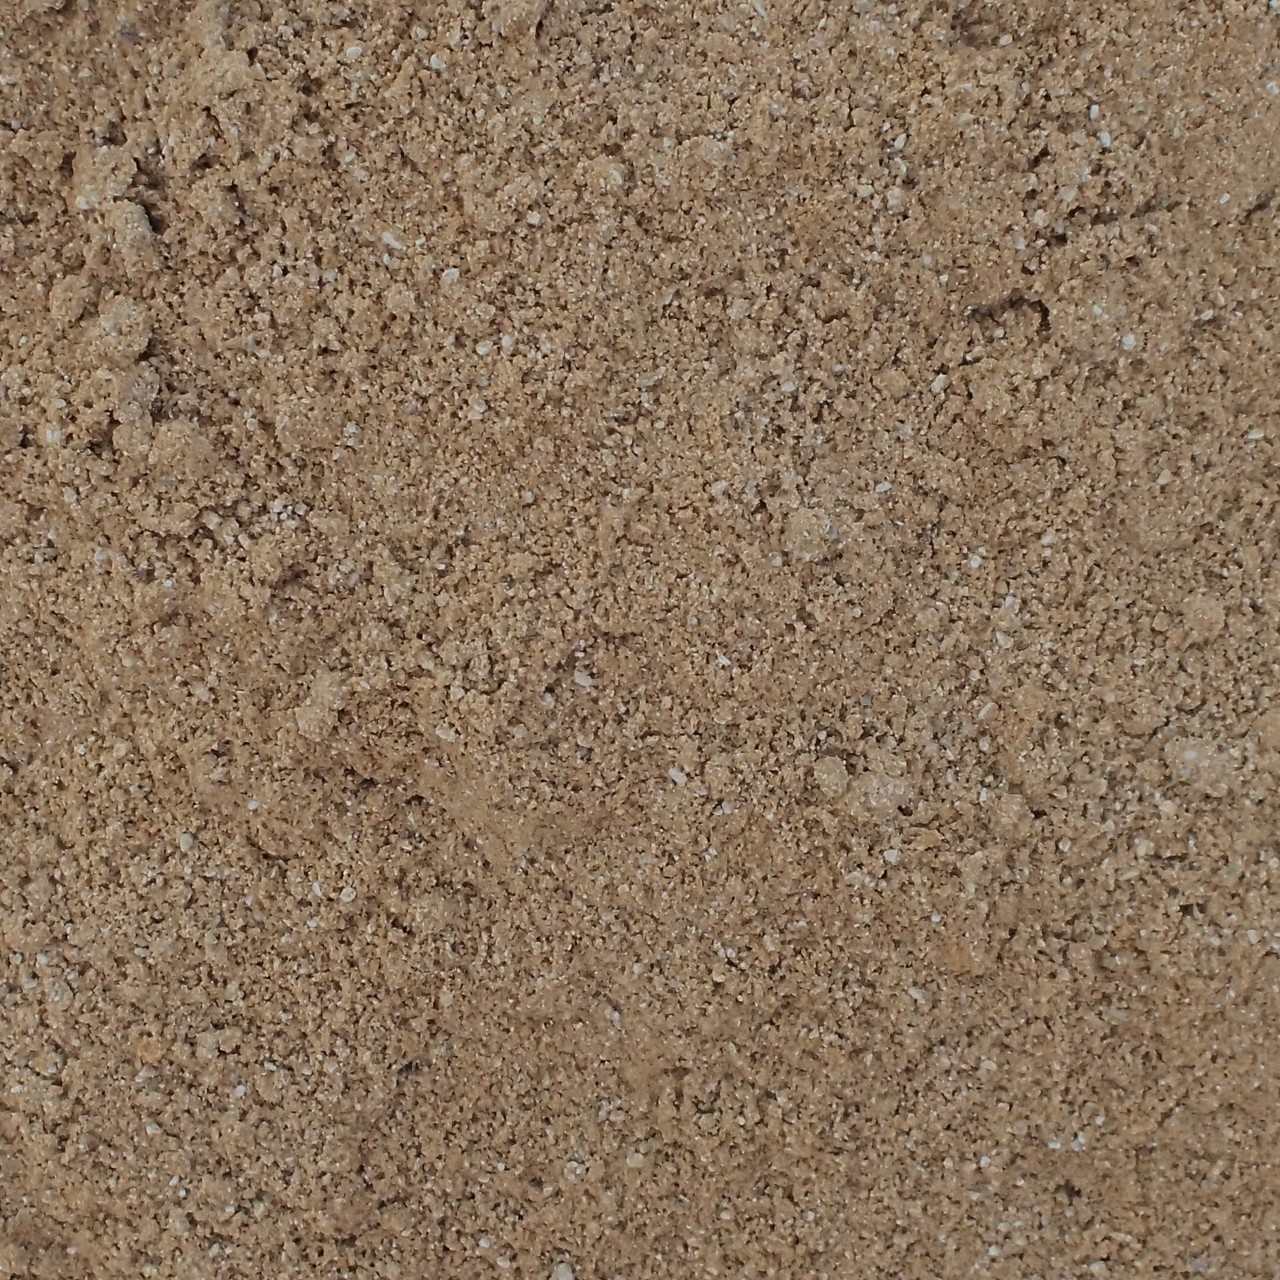 Sharp & Washed Mixed Sand (Plastering Sand)